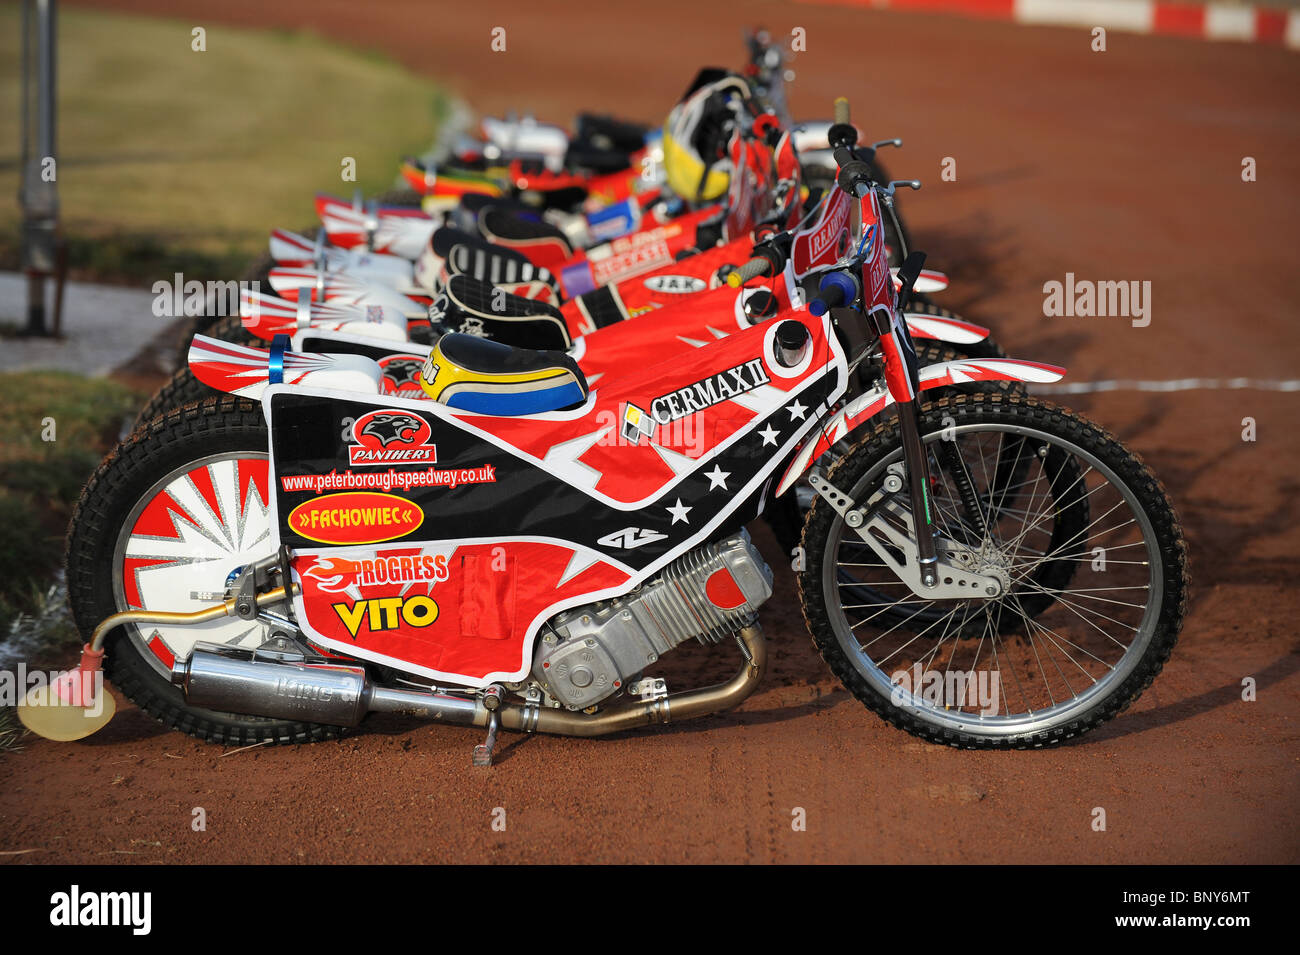 Speedway Bikes Are Lined Up On The Track Before Racing